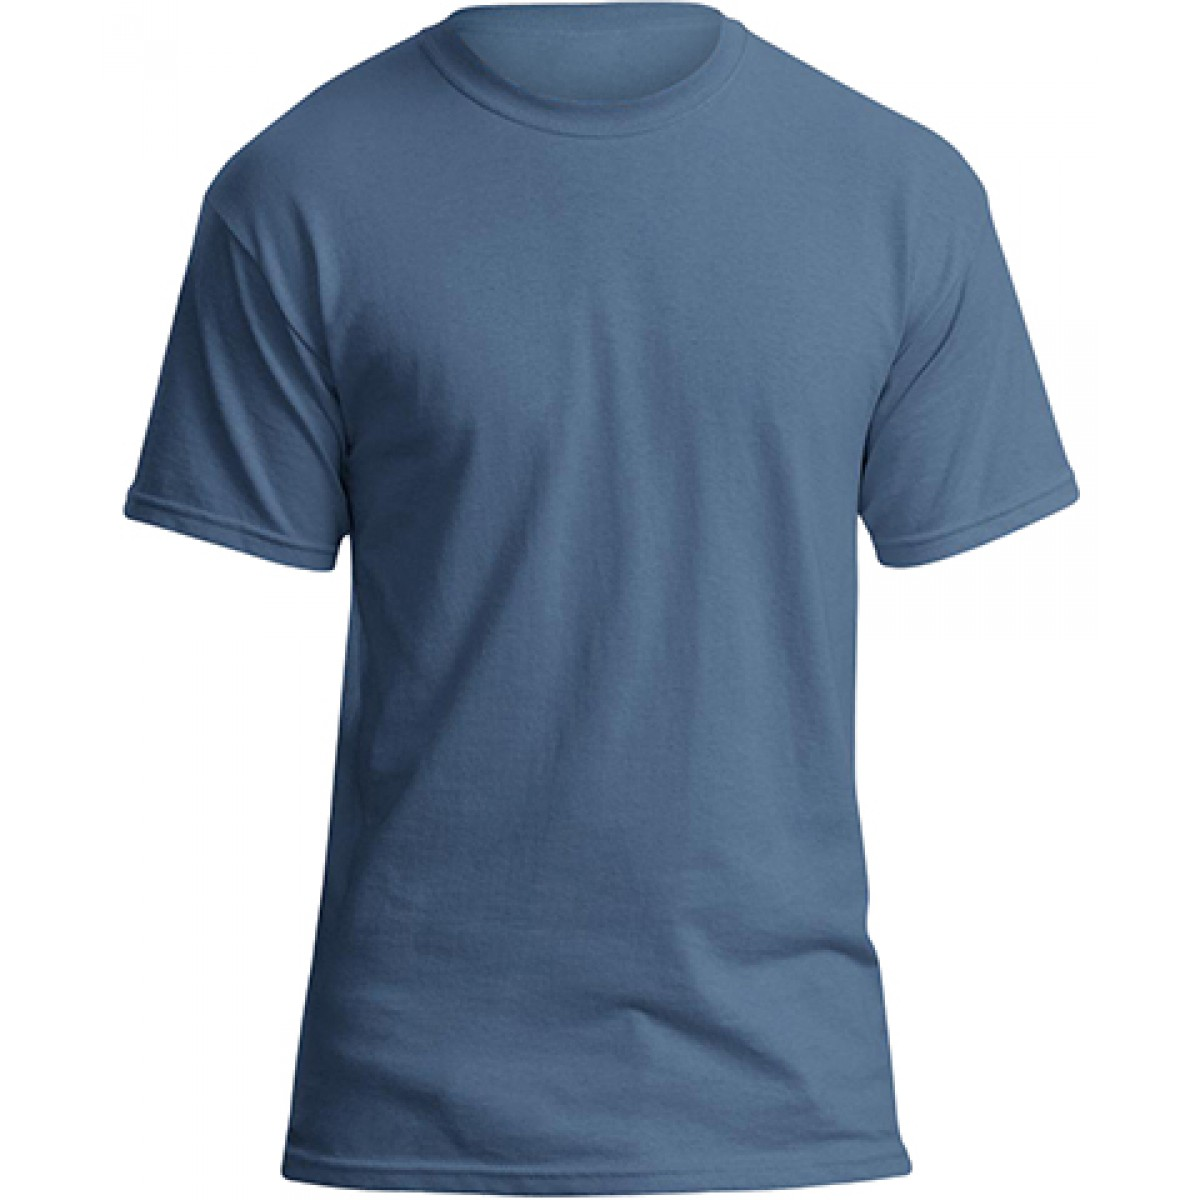 Soft 100% Cotton T-Shirt-Indigo Blue-S